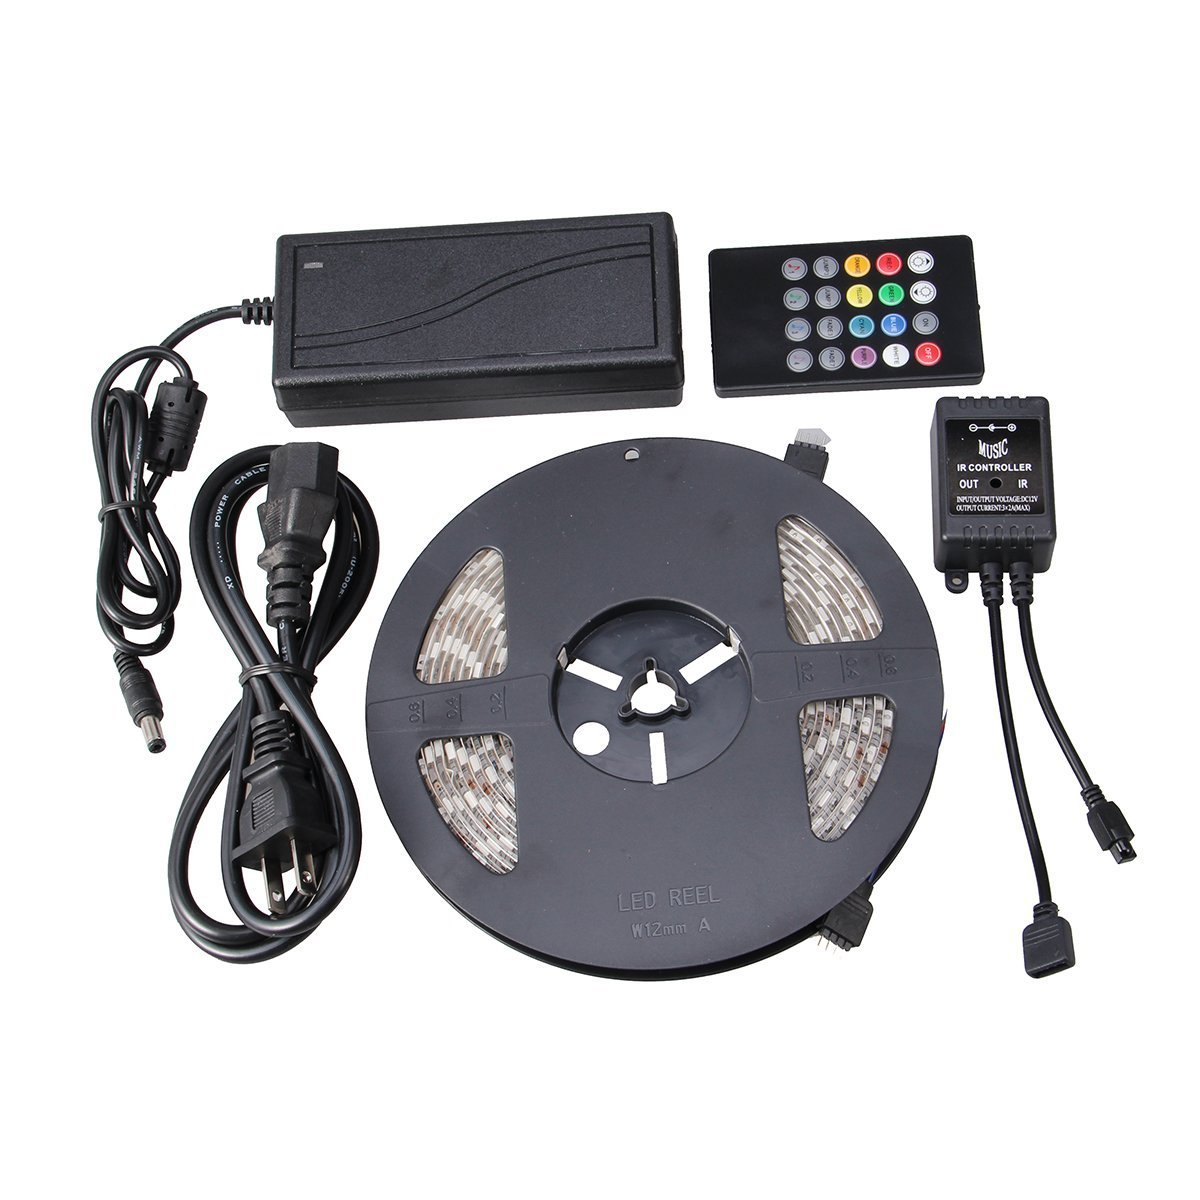 NEWSTYLE Waterproof 150LEDs 5M Color RGB LED Strip Light Kit with 20-key Music Sound Sense IR Controller and 12V Power Supply